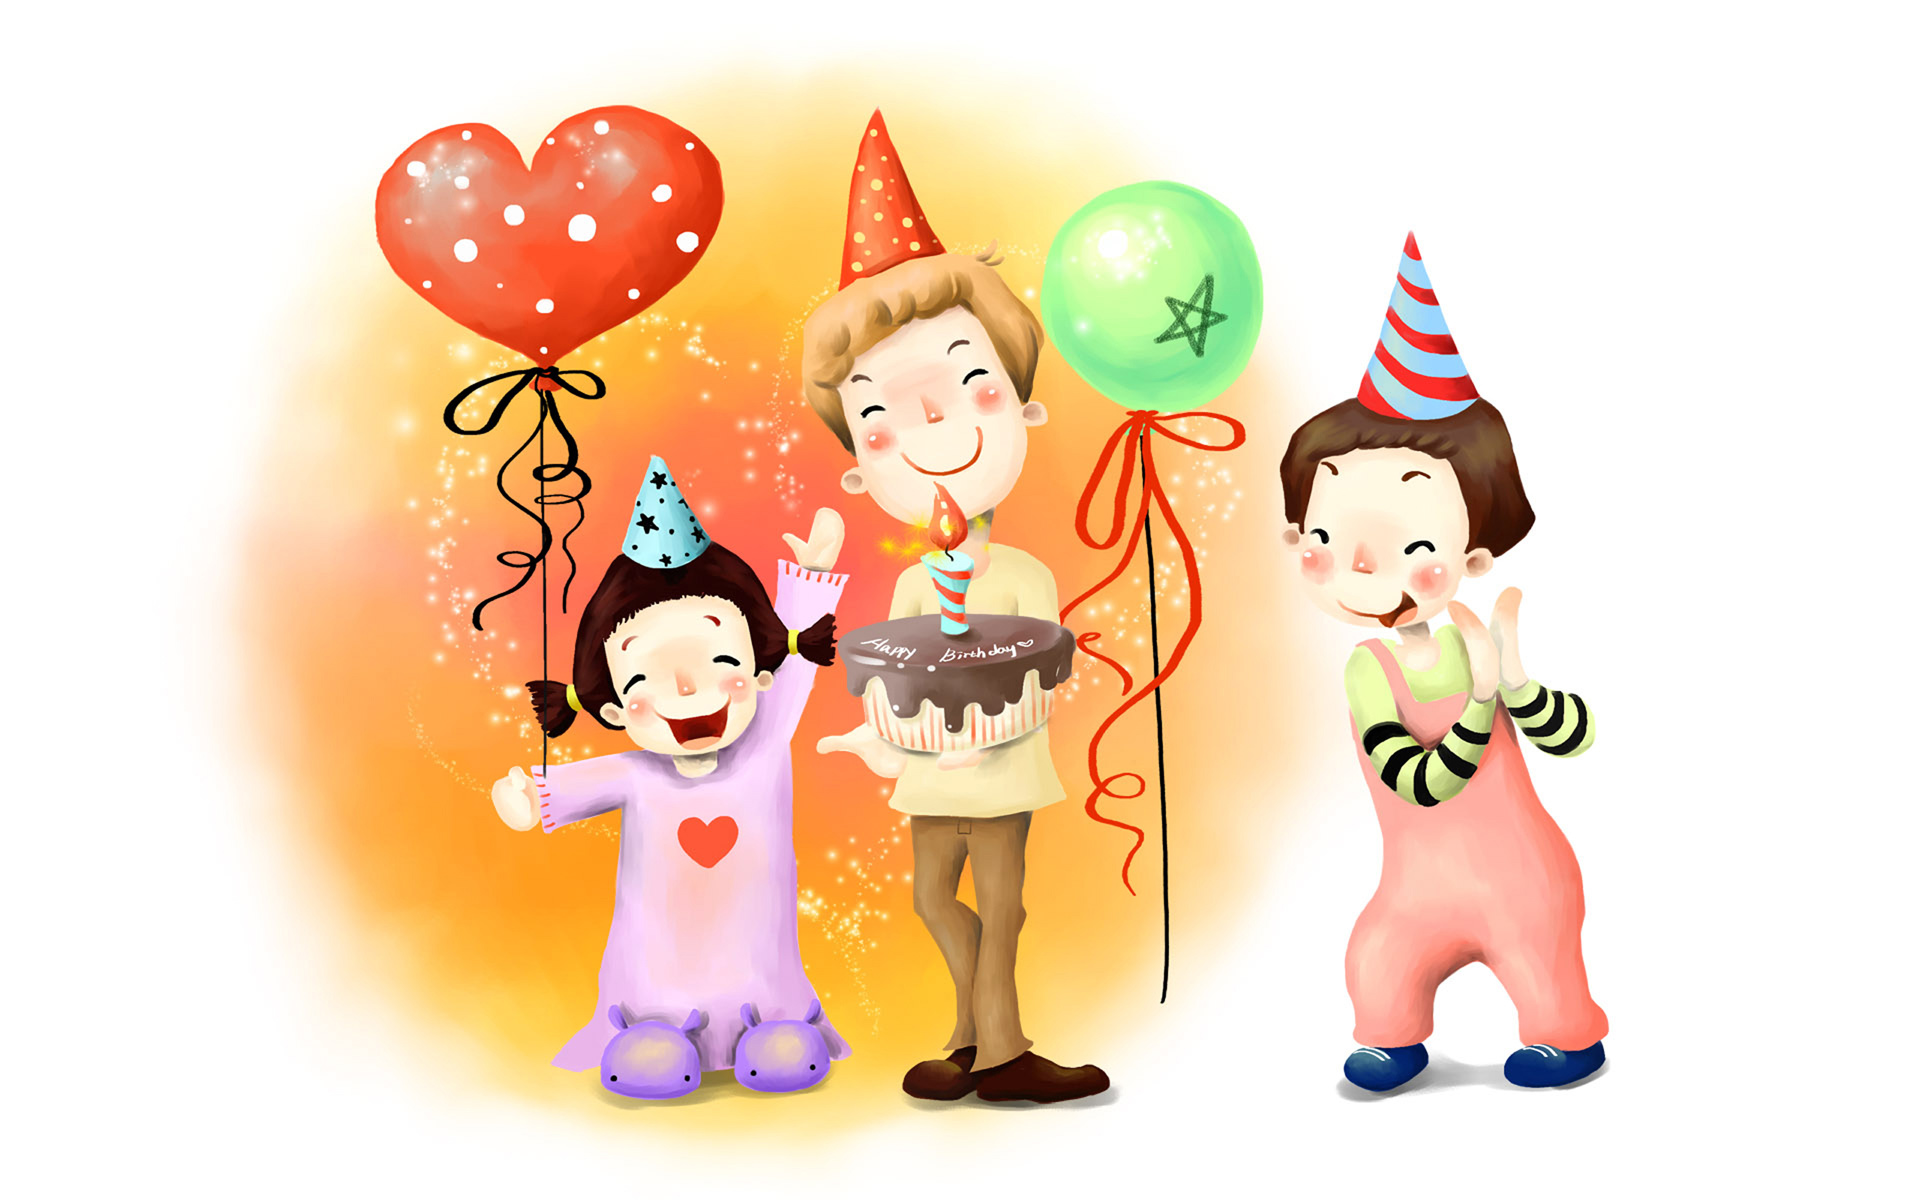 wallpaper cartoon birthday happy desktop 1920x1200 1920x1200